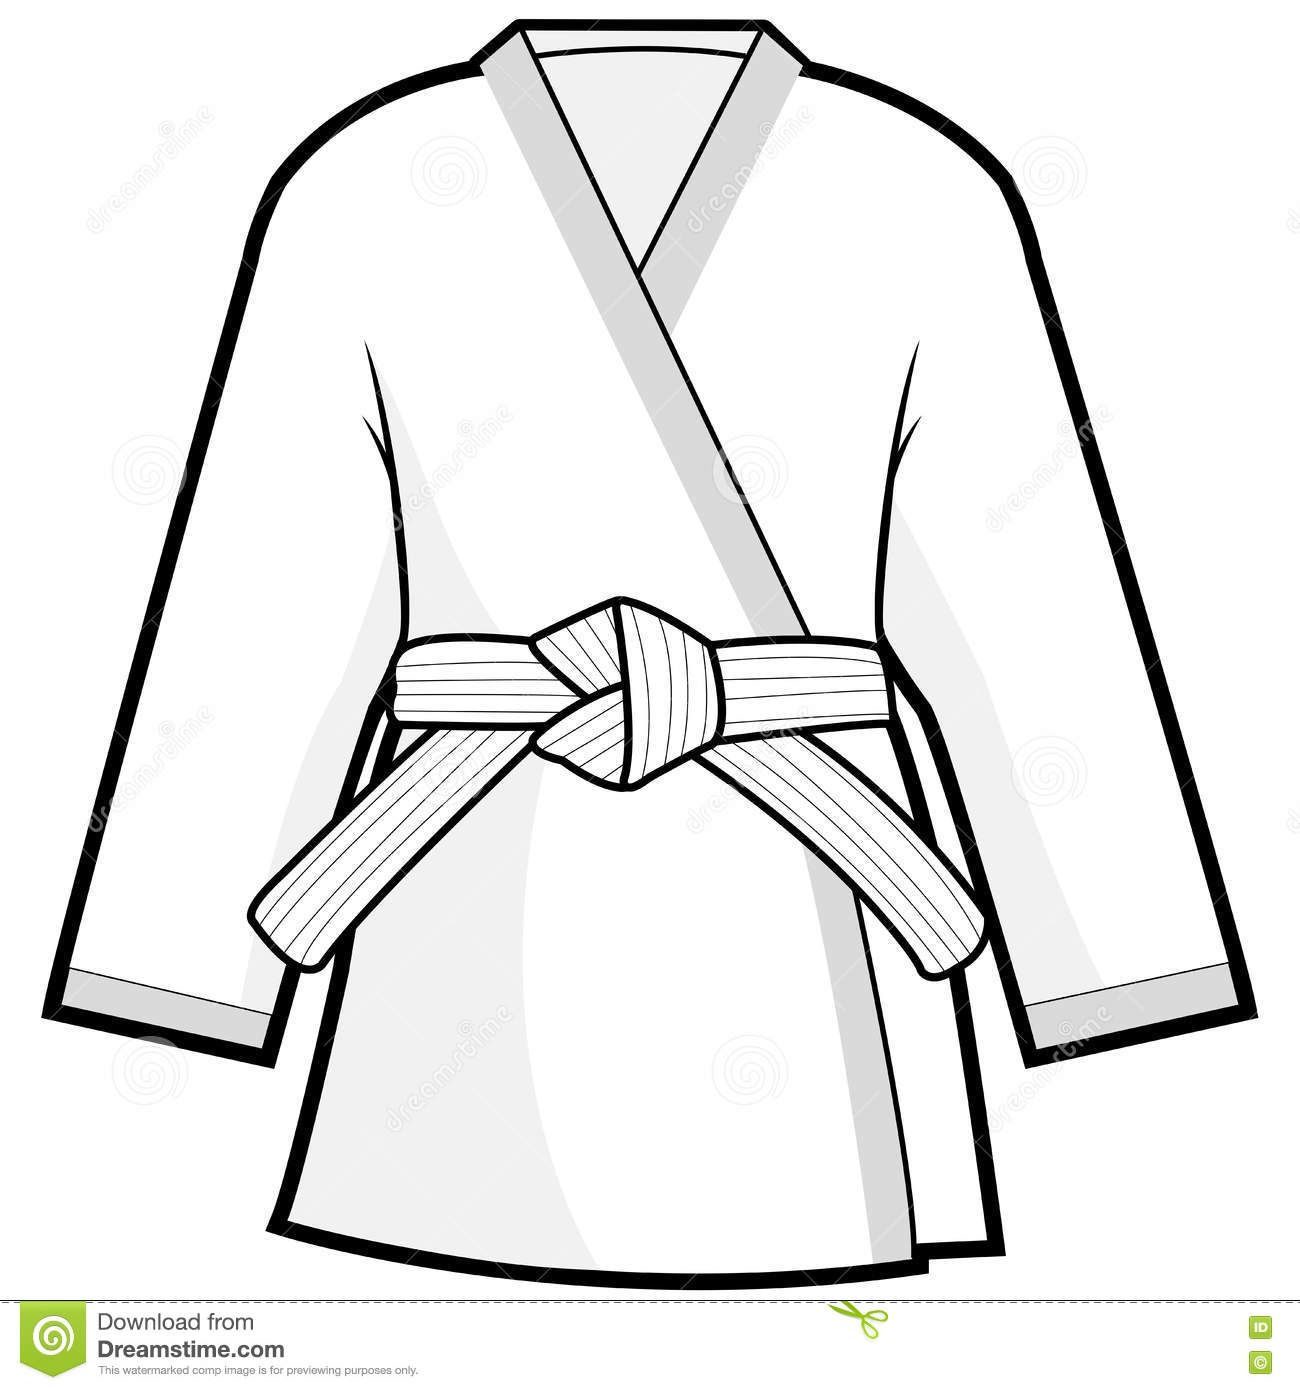 Judo images black and white clipart high res picture freeuse stock Image result for judo uniform clipart | WIS DigLit Malay Rungta ... picture freeuse stock